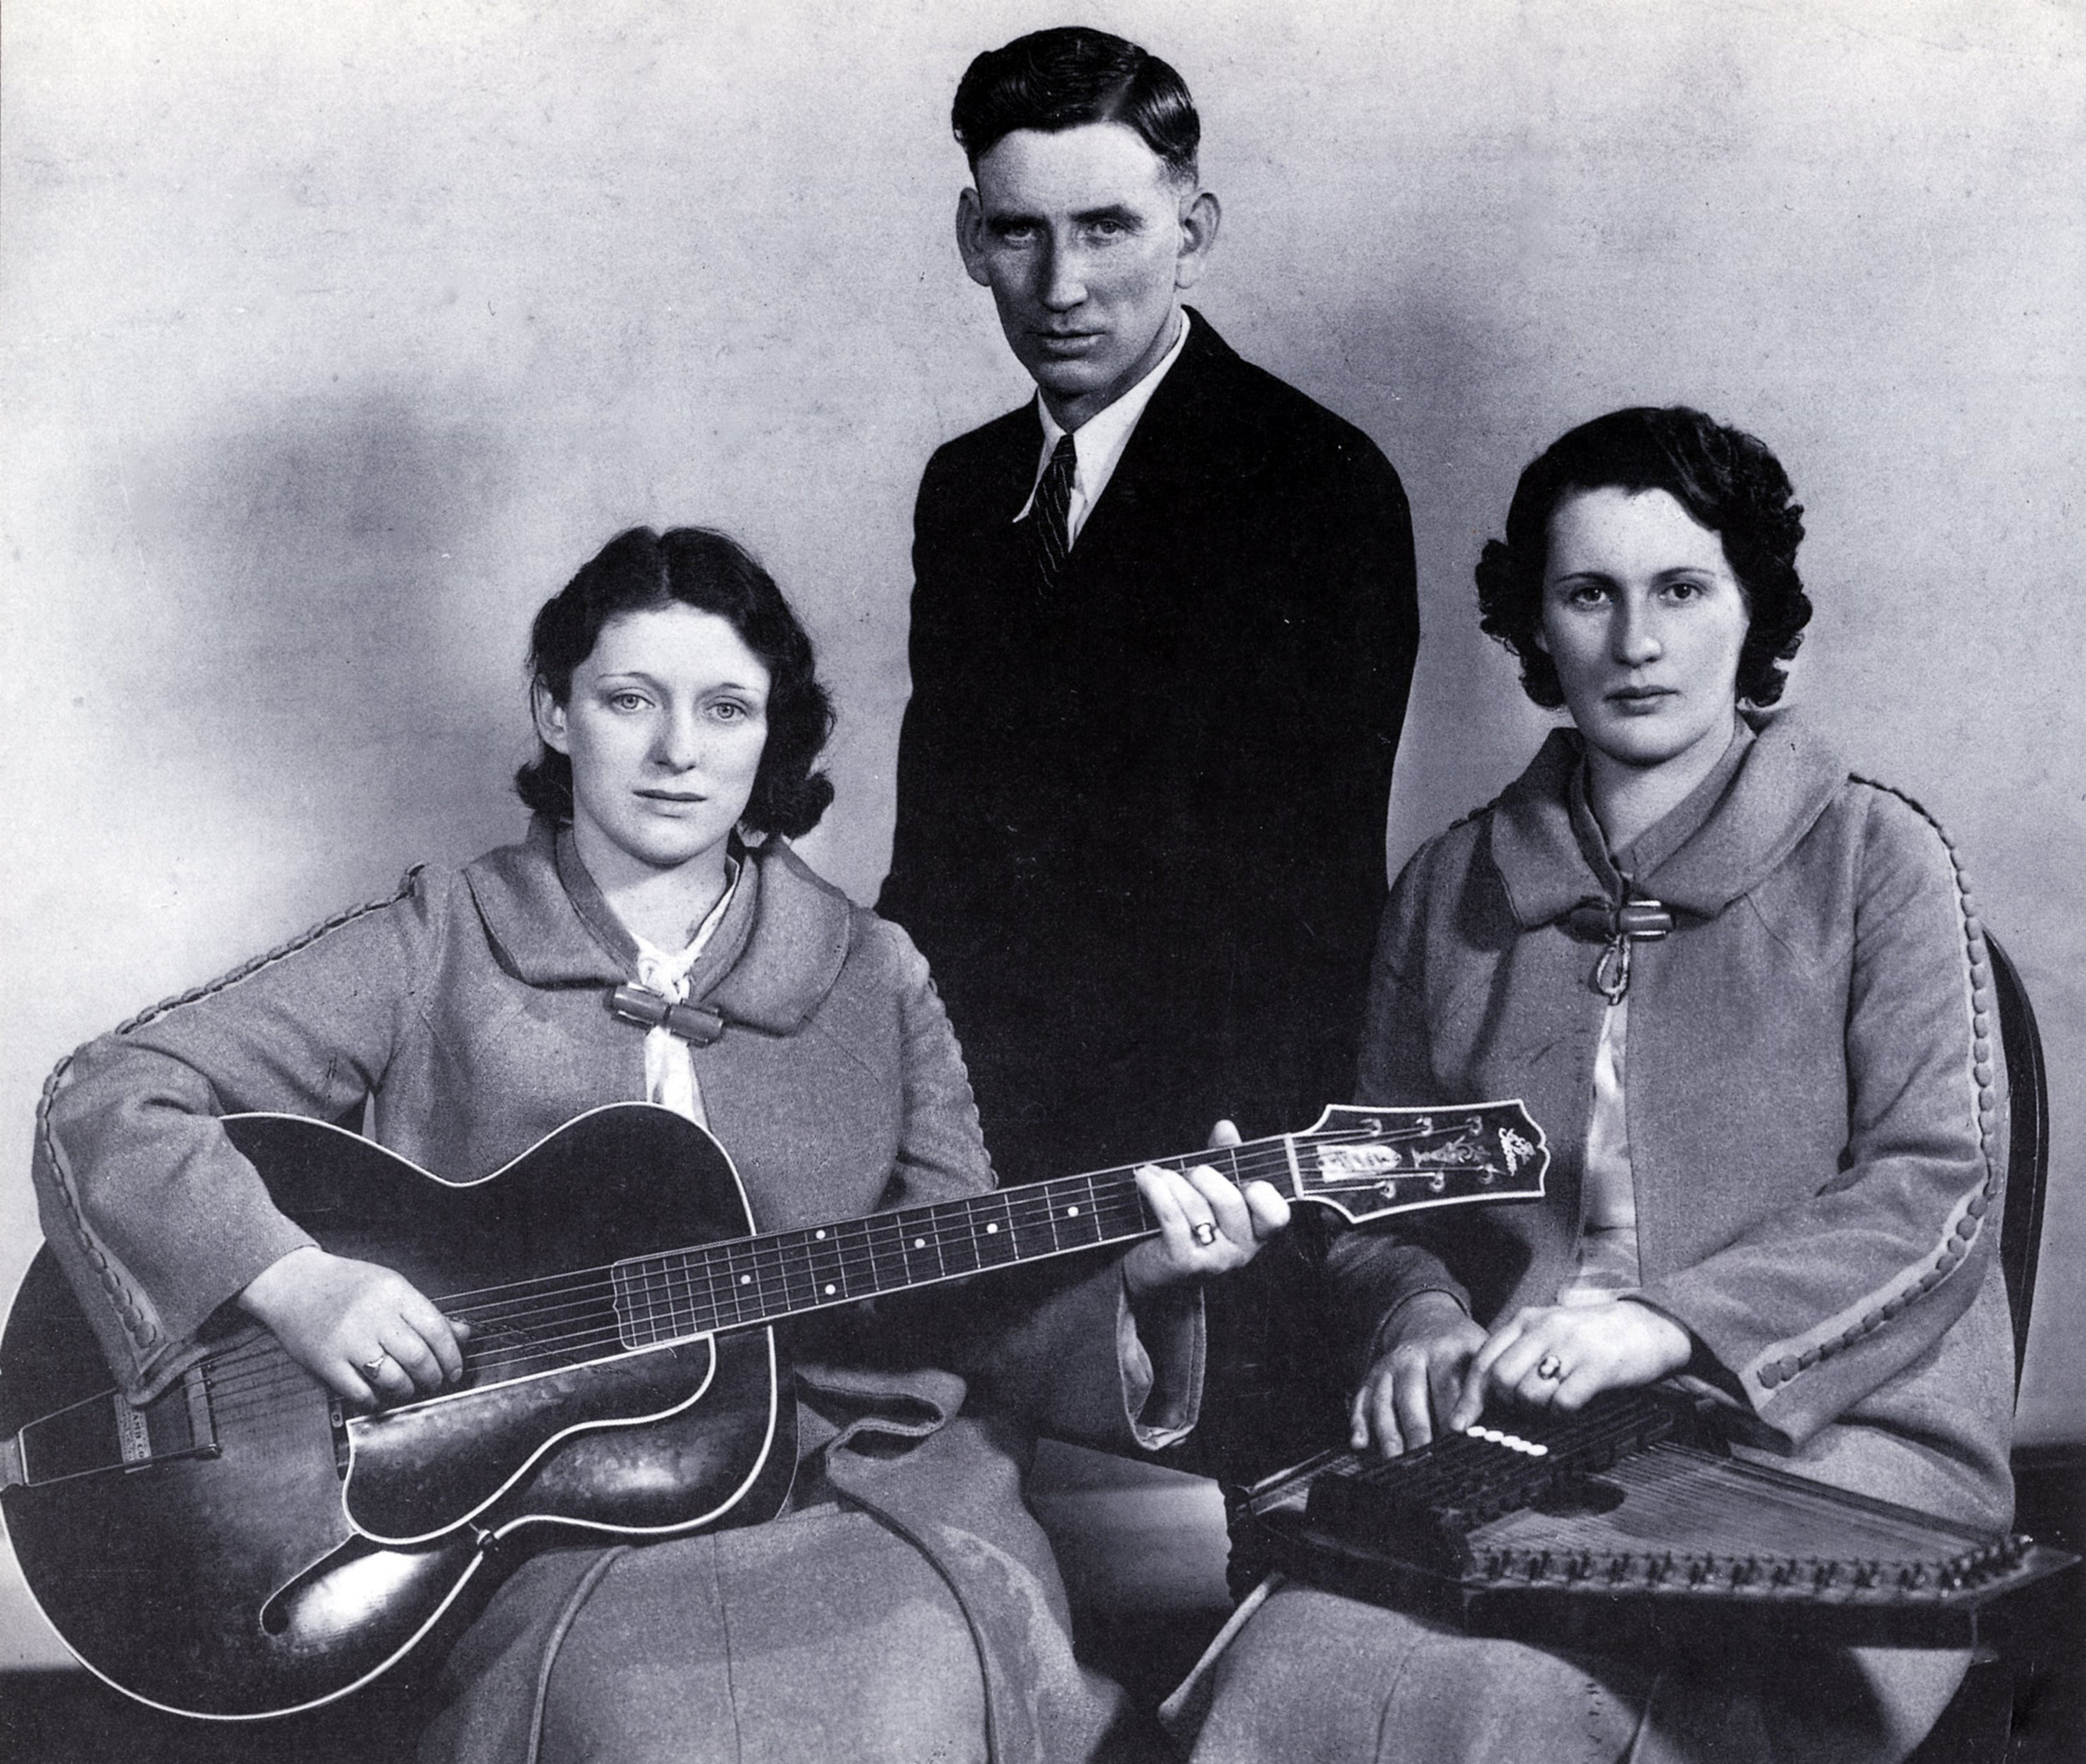 The Carter Family (1927-1934)